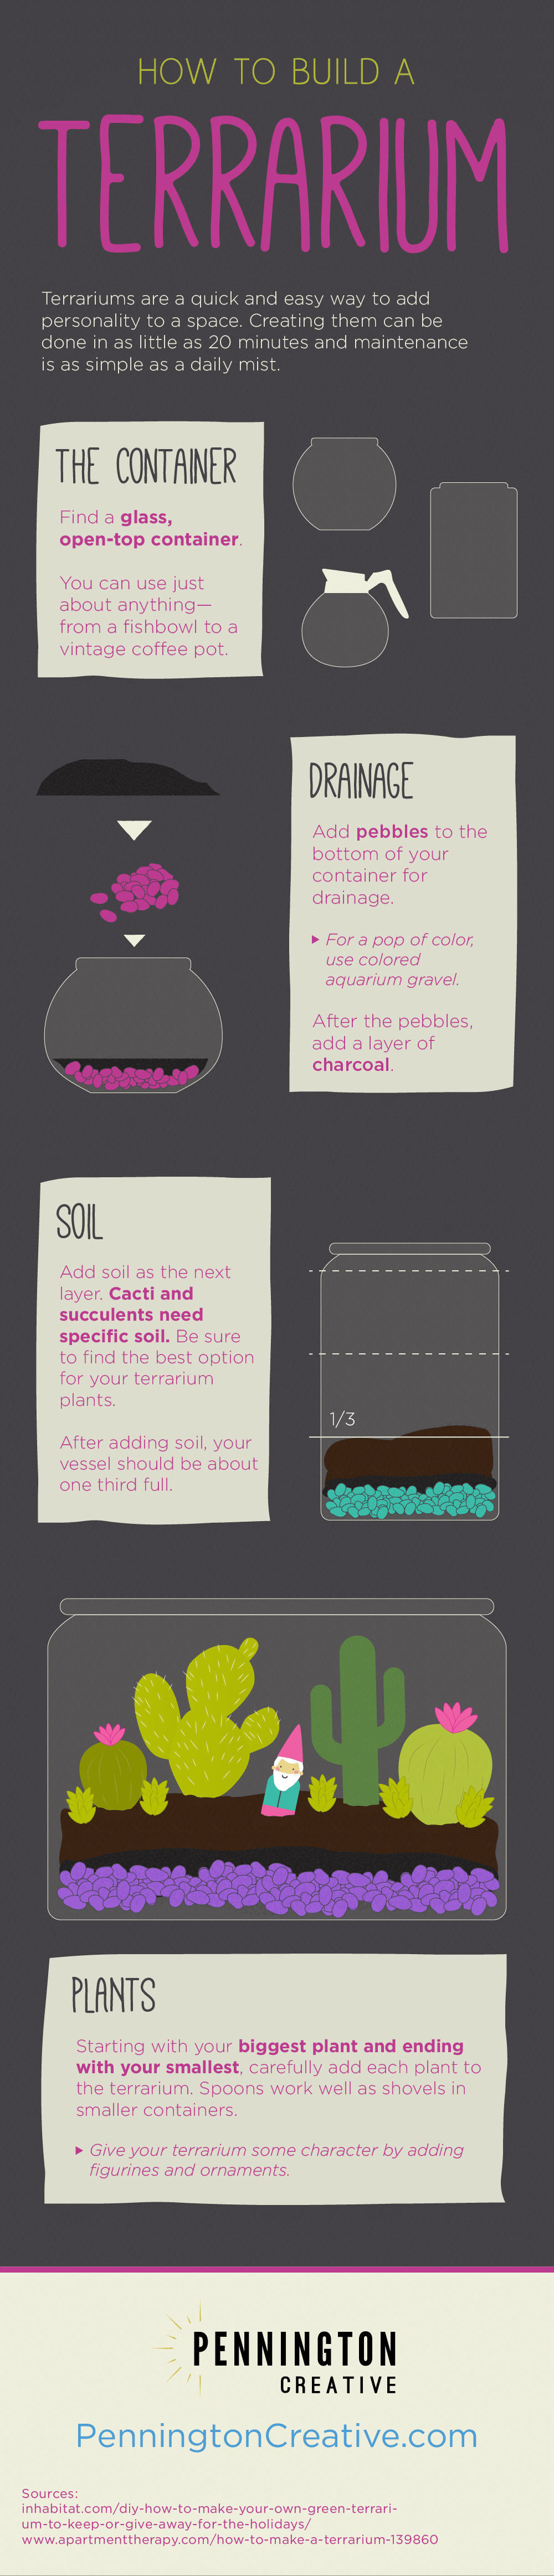 How to Build a Terrarium Infographic